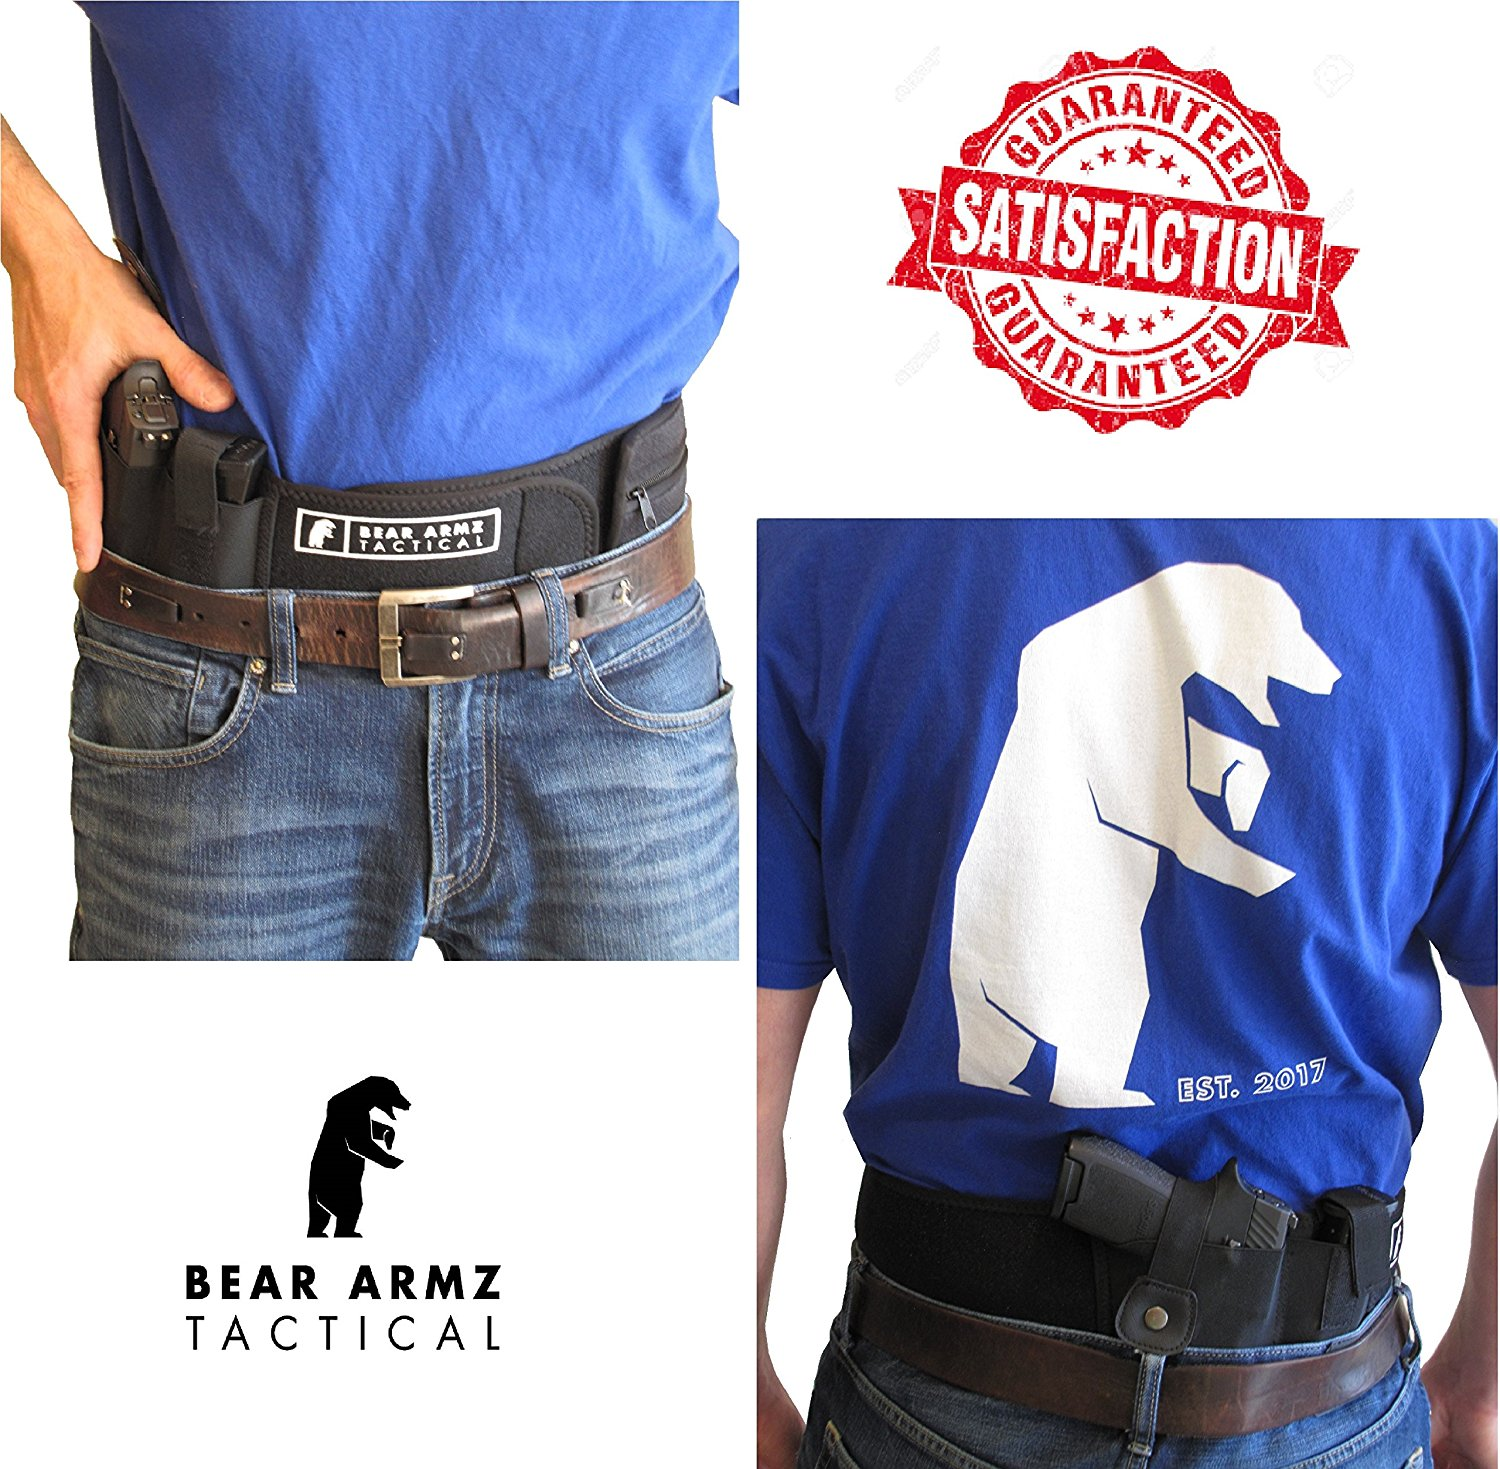 Sporttaschen & Rucksäcke Holster for Concealed Carry IWB Holster Waist Band Handgun Carrying System  VJ